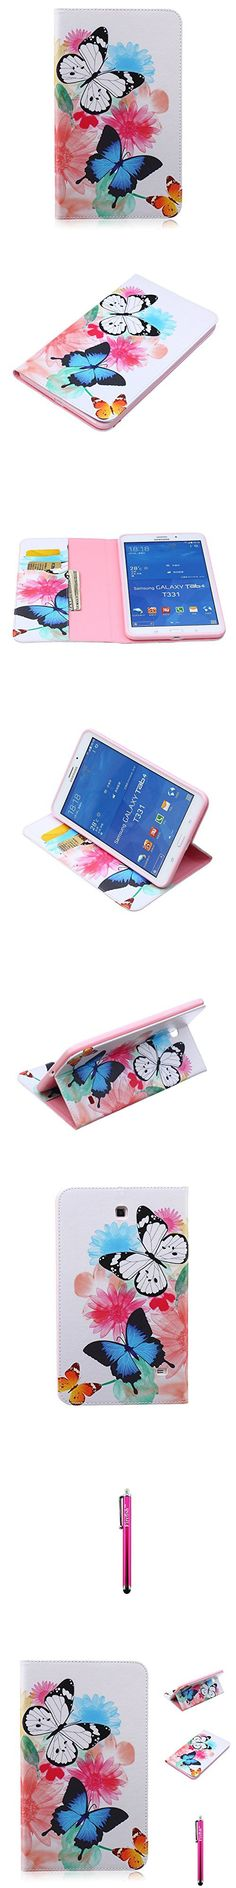 Galaxy Tab 4 8.0 Case, Firefish Premium PU Leather Wallet [Card Slots] [Kickstand Feature] Scratch-Resistant Cover for Samsung Galaxy Tab 4 8.0 SM-T330 - Two Butterflies